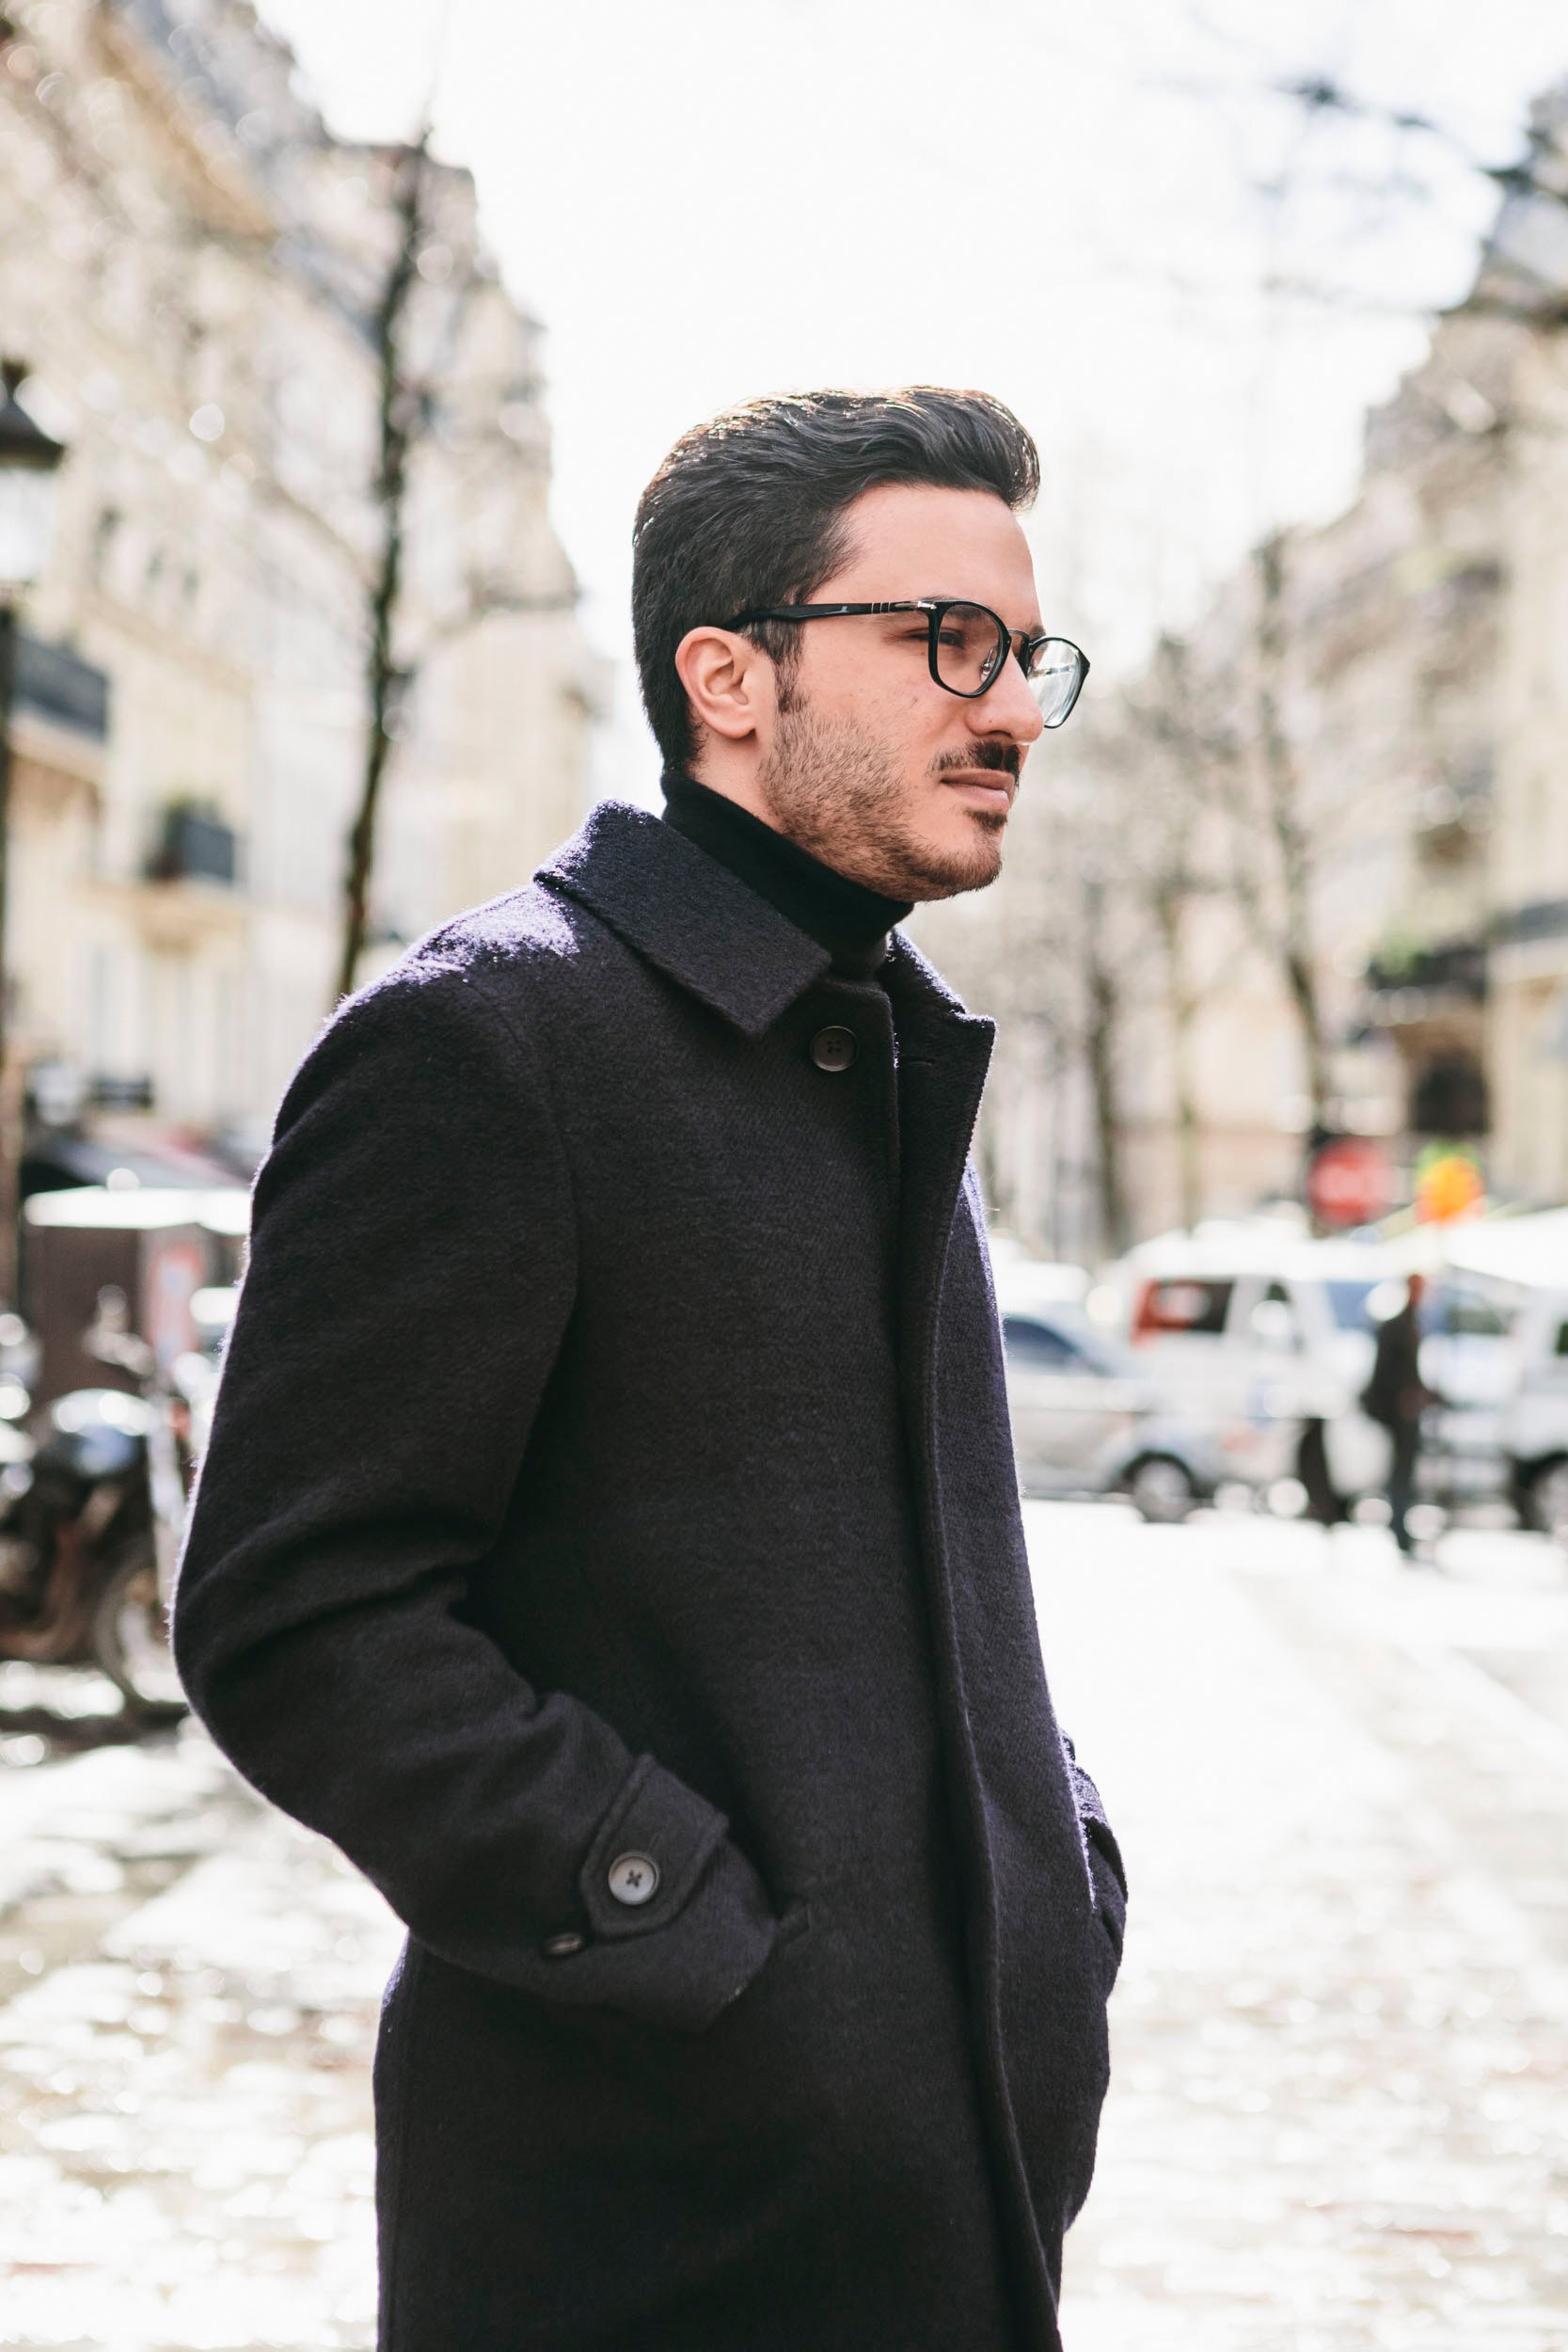 Interview and portrait of Elie Yobeid lebanonbyalocal Instagrammer and foodie captured by Paris Photographer Federico Guendel www.iheartparis.fr